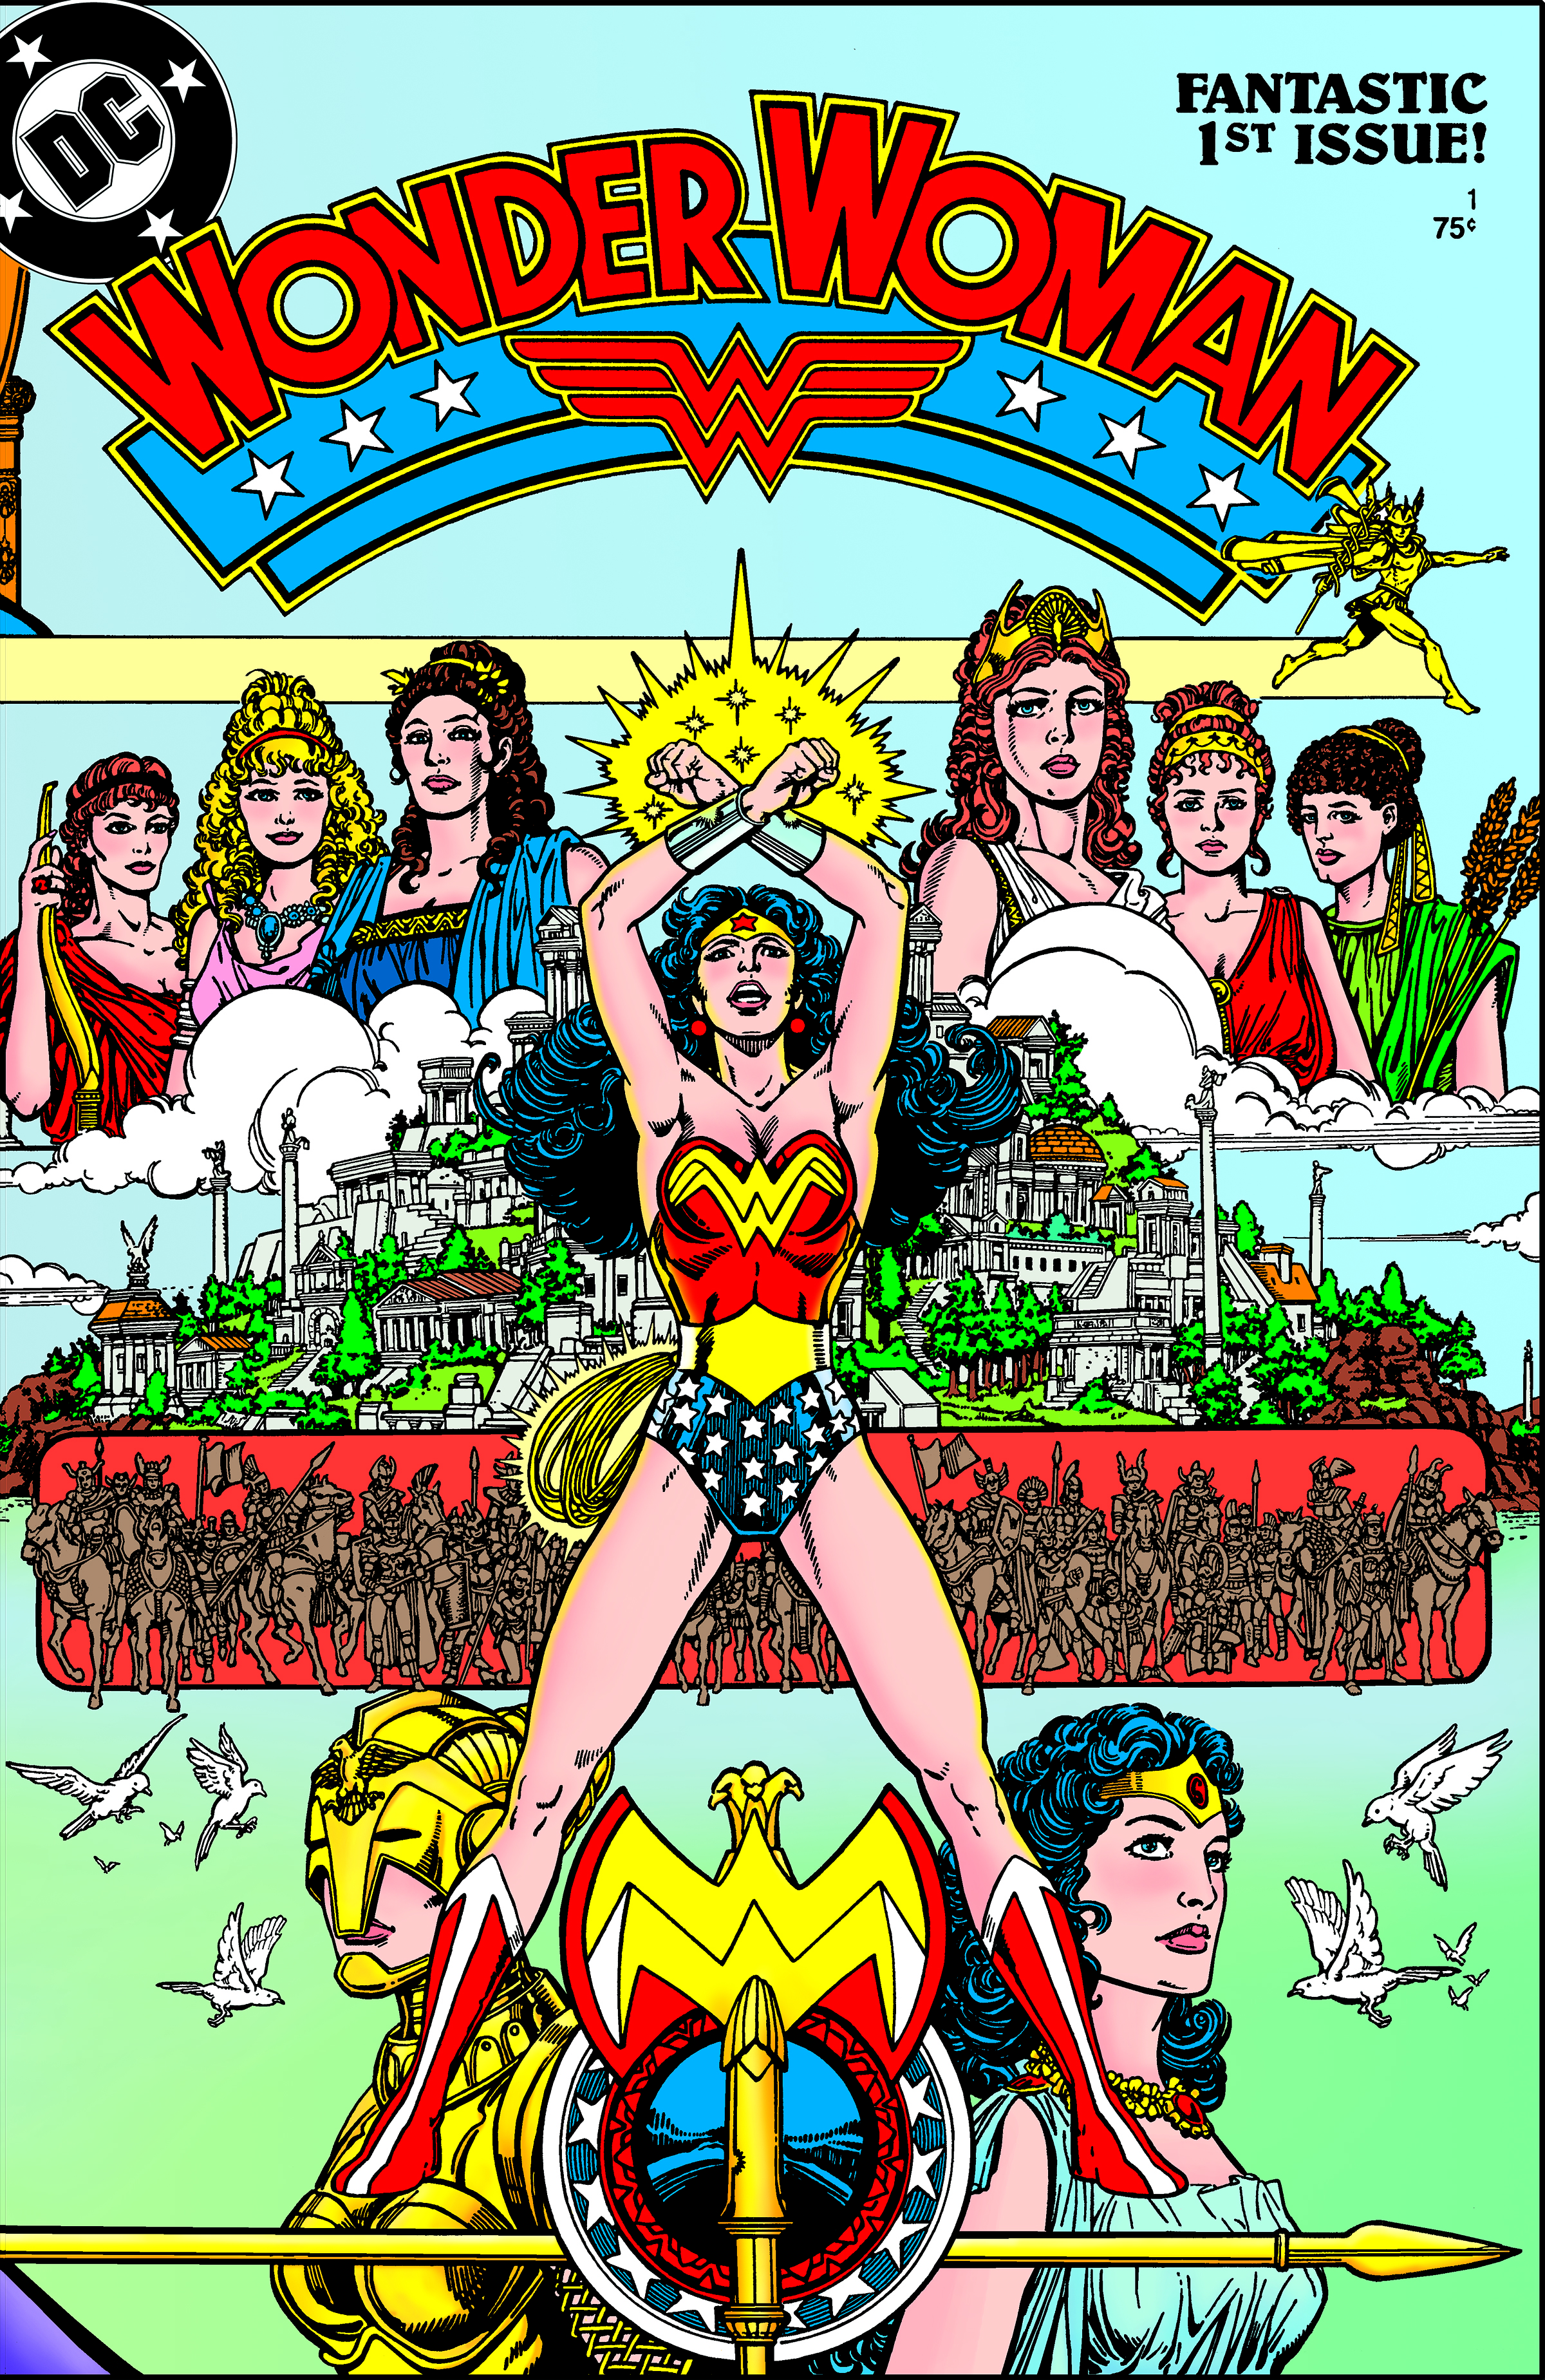 1987: Writer George Pérez reboots a flagging franchise. He modernizes Wonder Woman's story, emphasizing her Amazonian origins and making her more muscular.